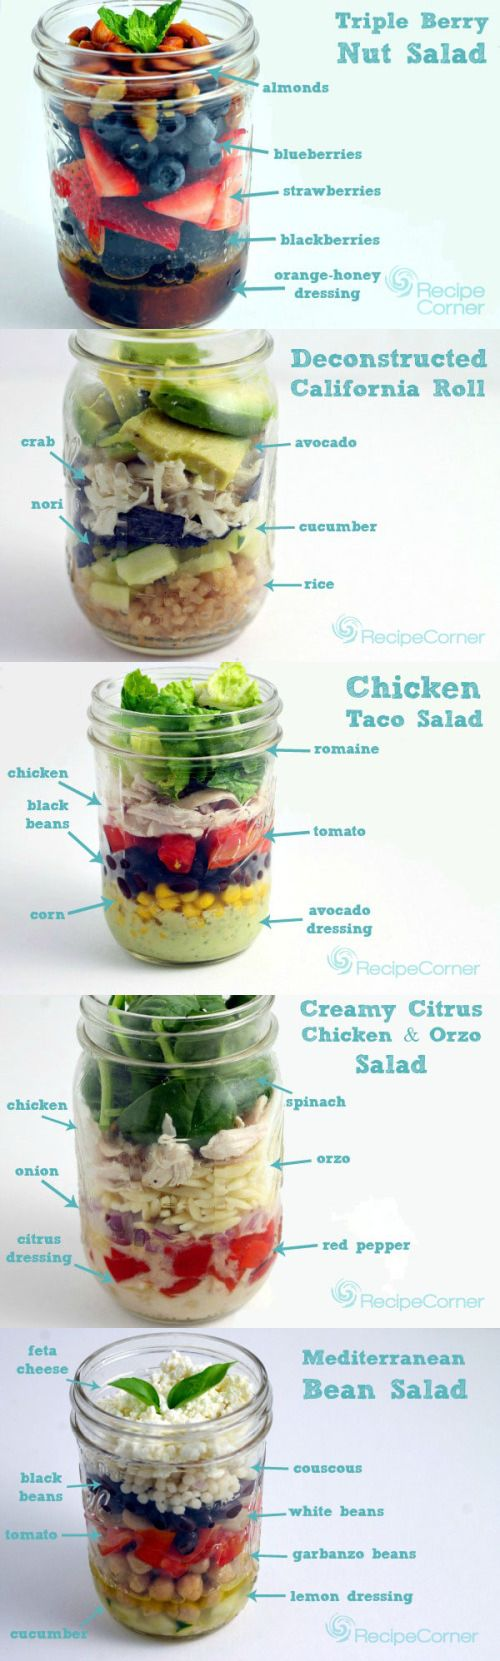 5 idées de salades en pot (en anglais) 5 Affordable Mason Jar Salads Under 500 Calories…RECIPES